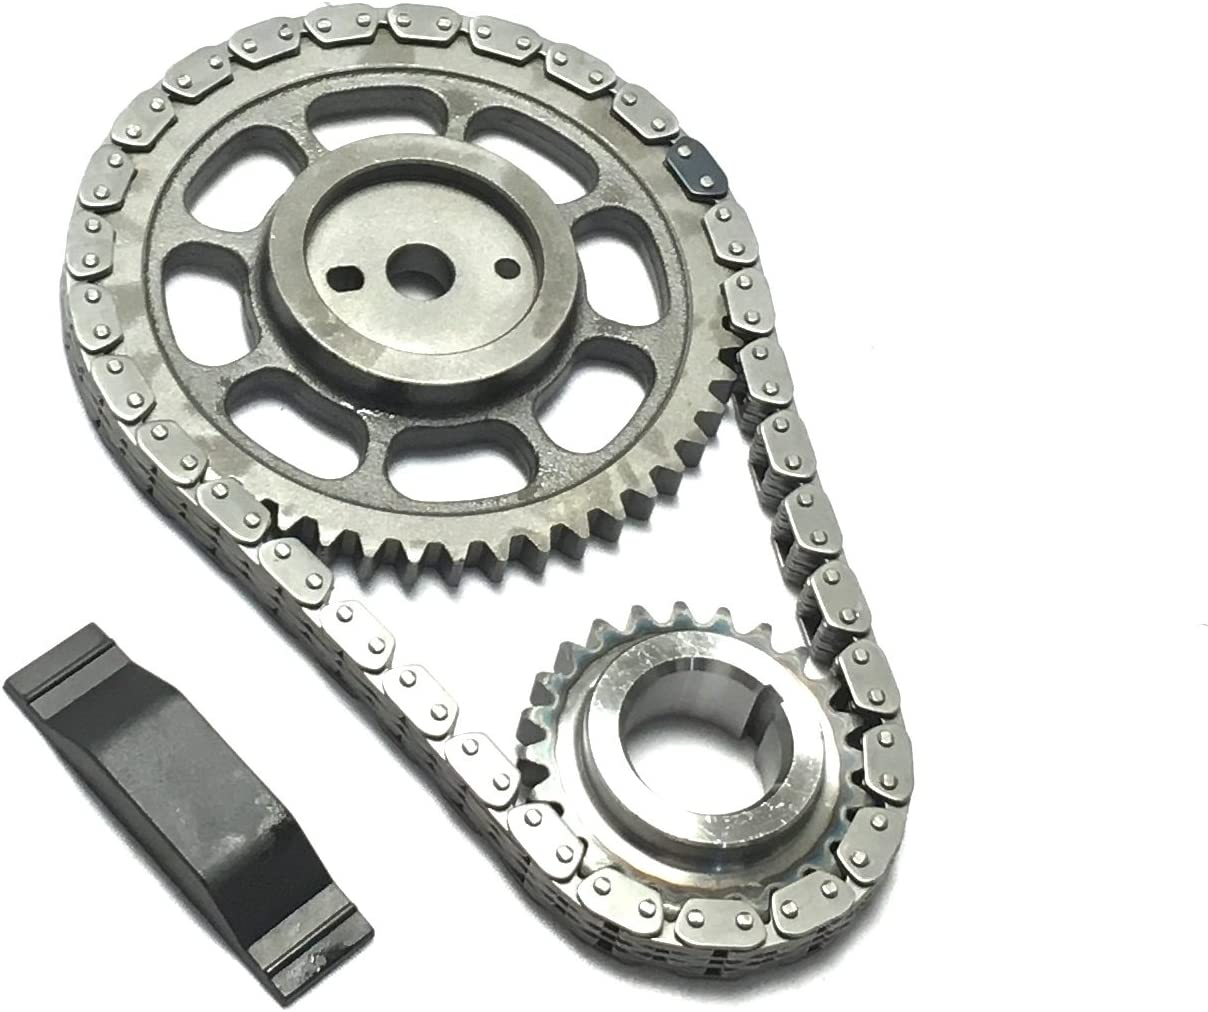 Diamond Power Timing Chain kit works with Jeep Cherokee Grand Cherokee Wrangler 4.0L 3966CC OHV 12V L6